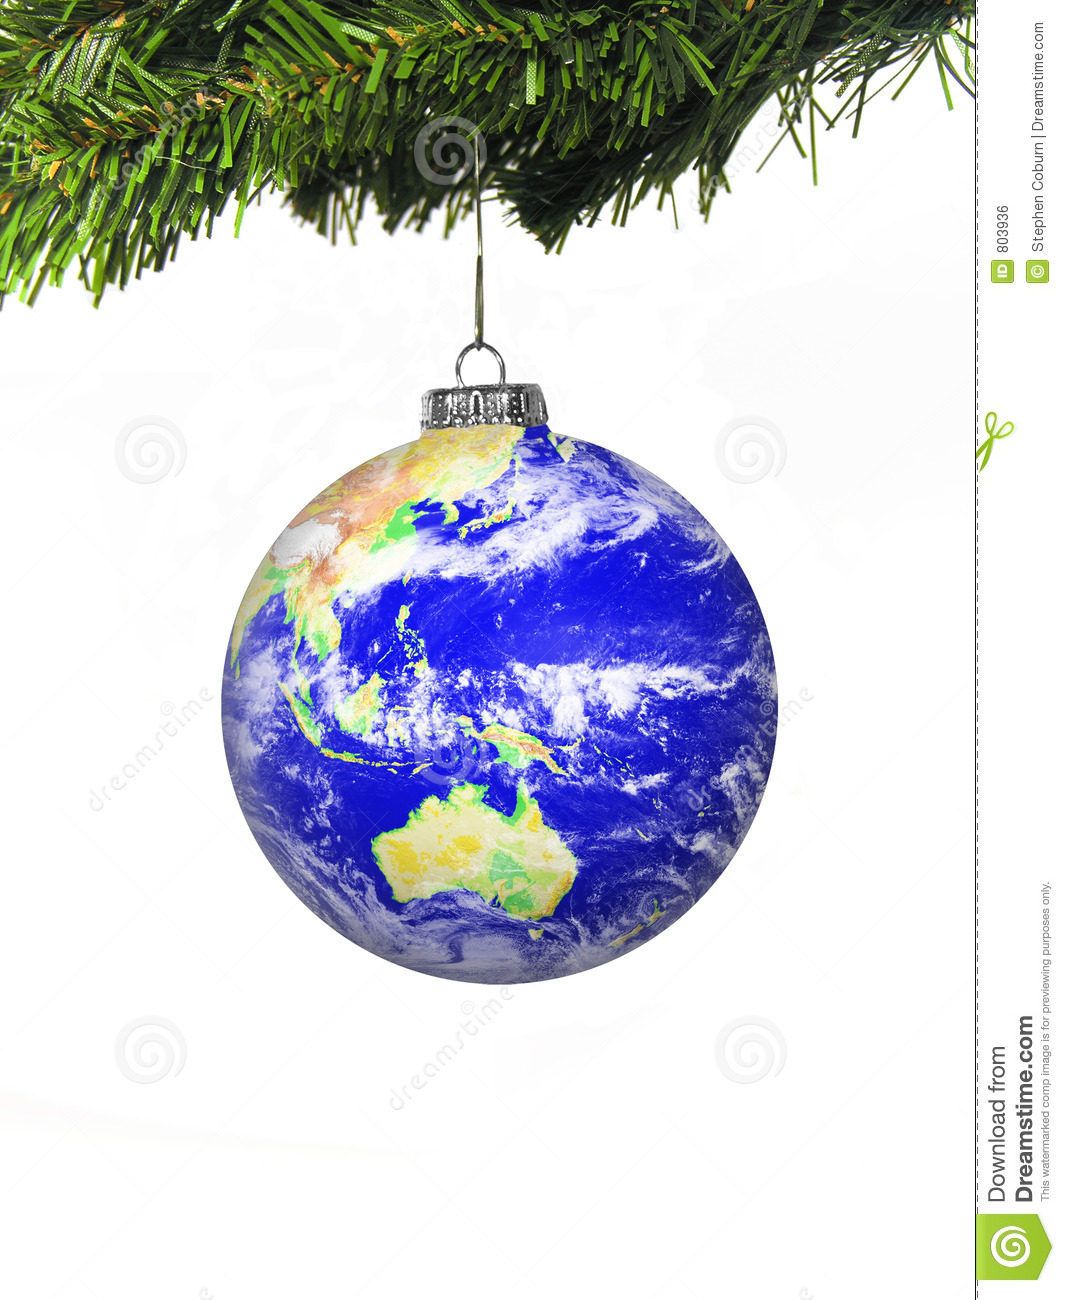 World globe christmas ornaments - Christmas Globe